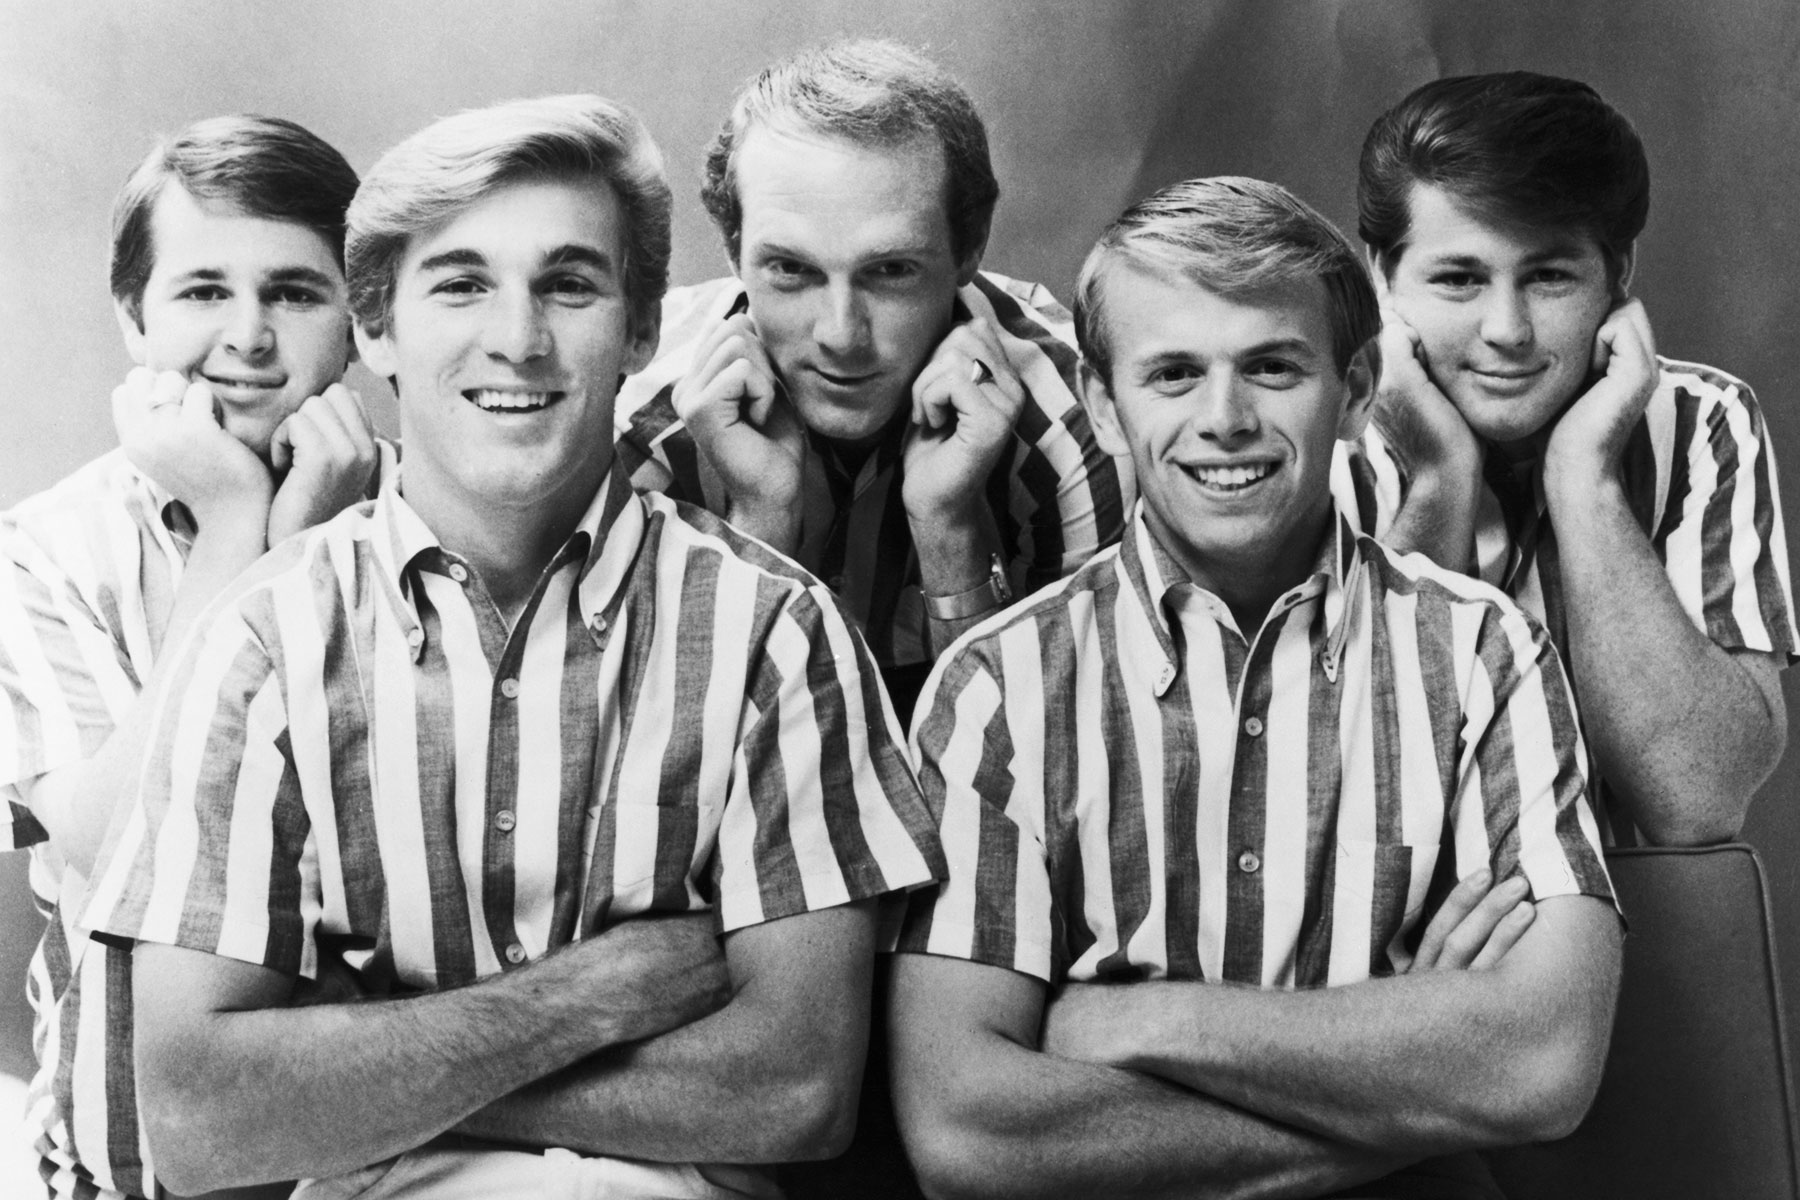 41953407 The Beach Boys pose for a portrait in 1964. From left to right, Carl  Wilson, Dennis Wilson, Mike Love, Al Jardine and Brian Wilson.